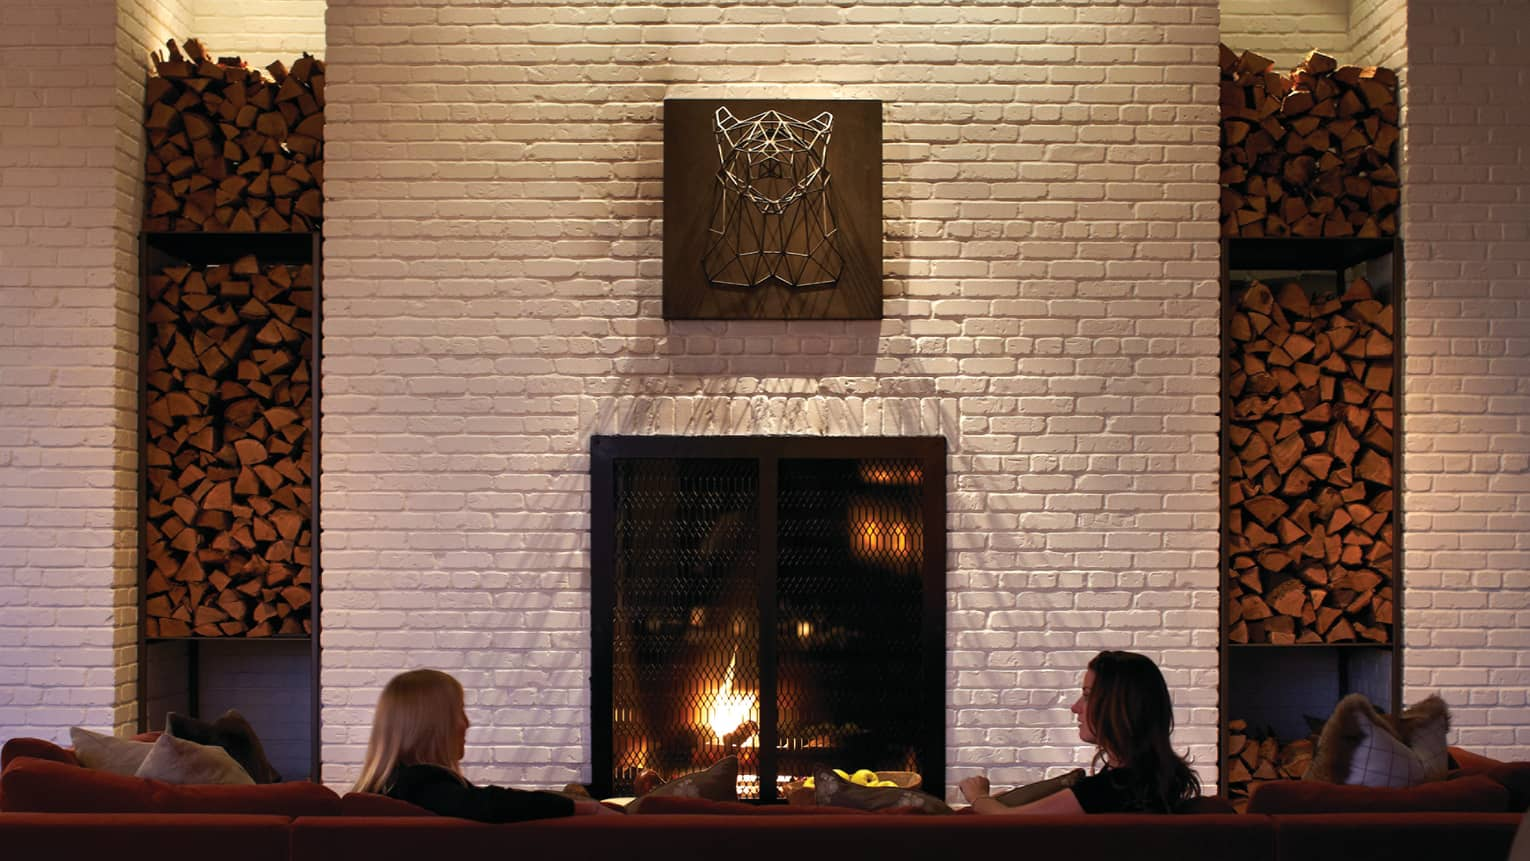 Back of man and woman sitting on long sofa in front of fireplace, tall white brick mantle with art